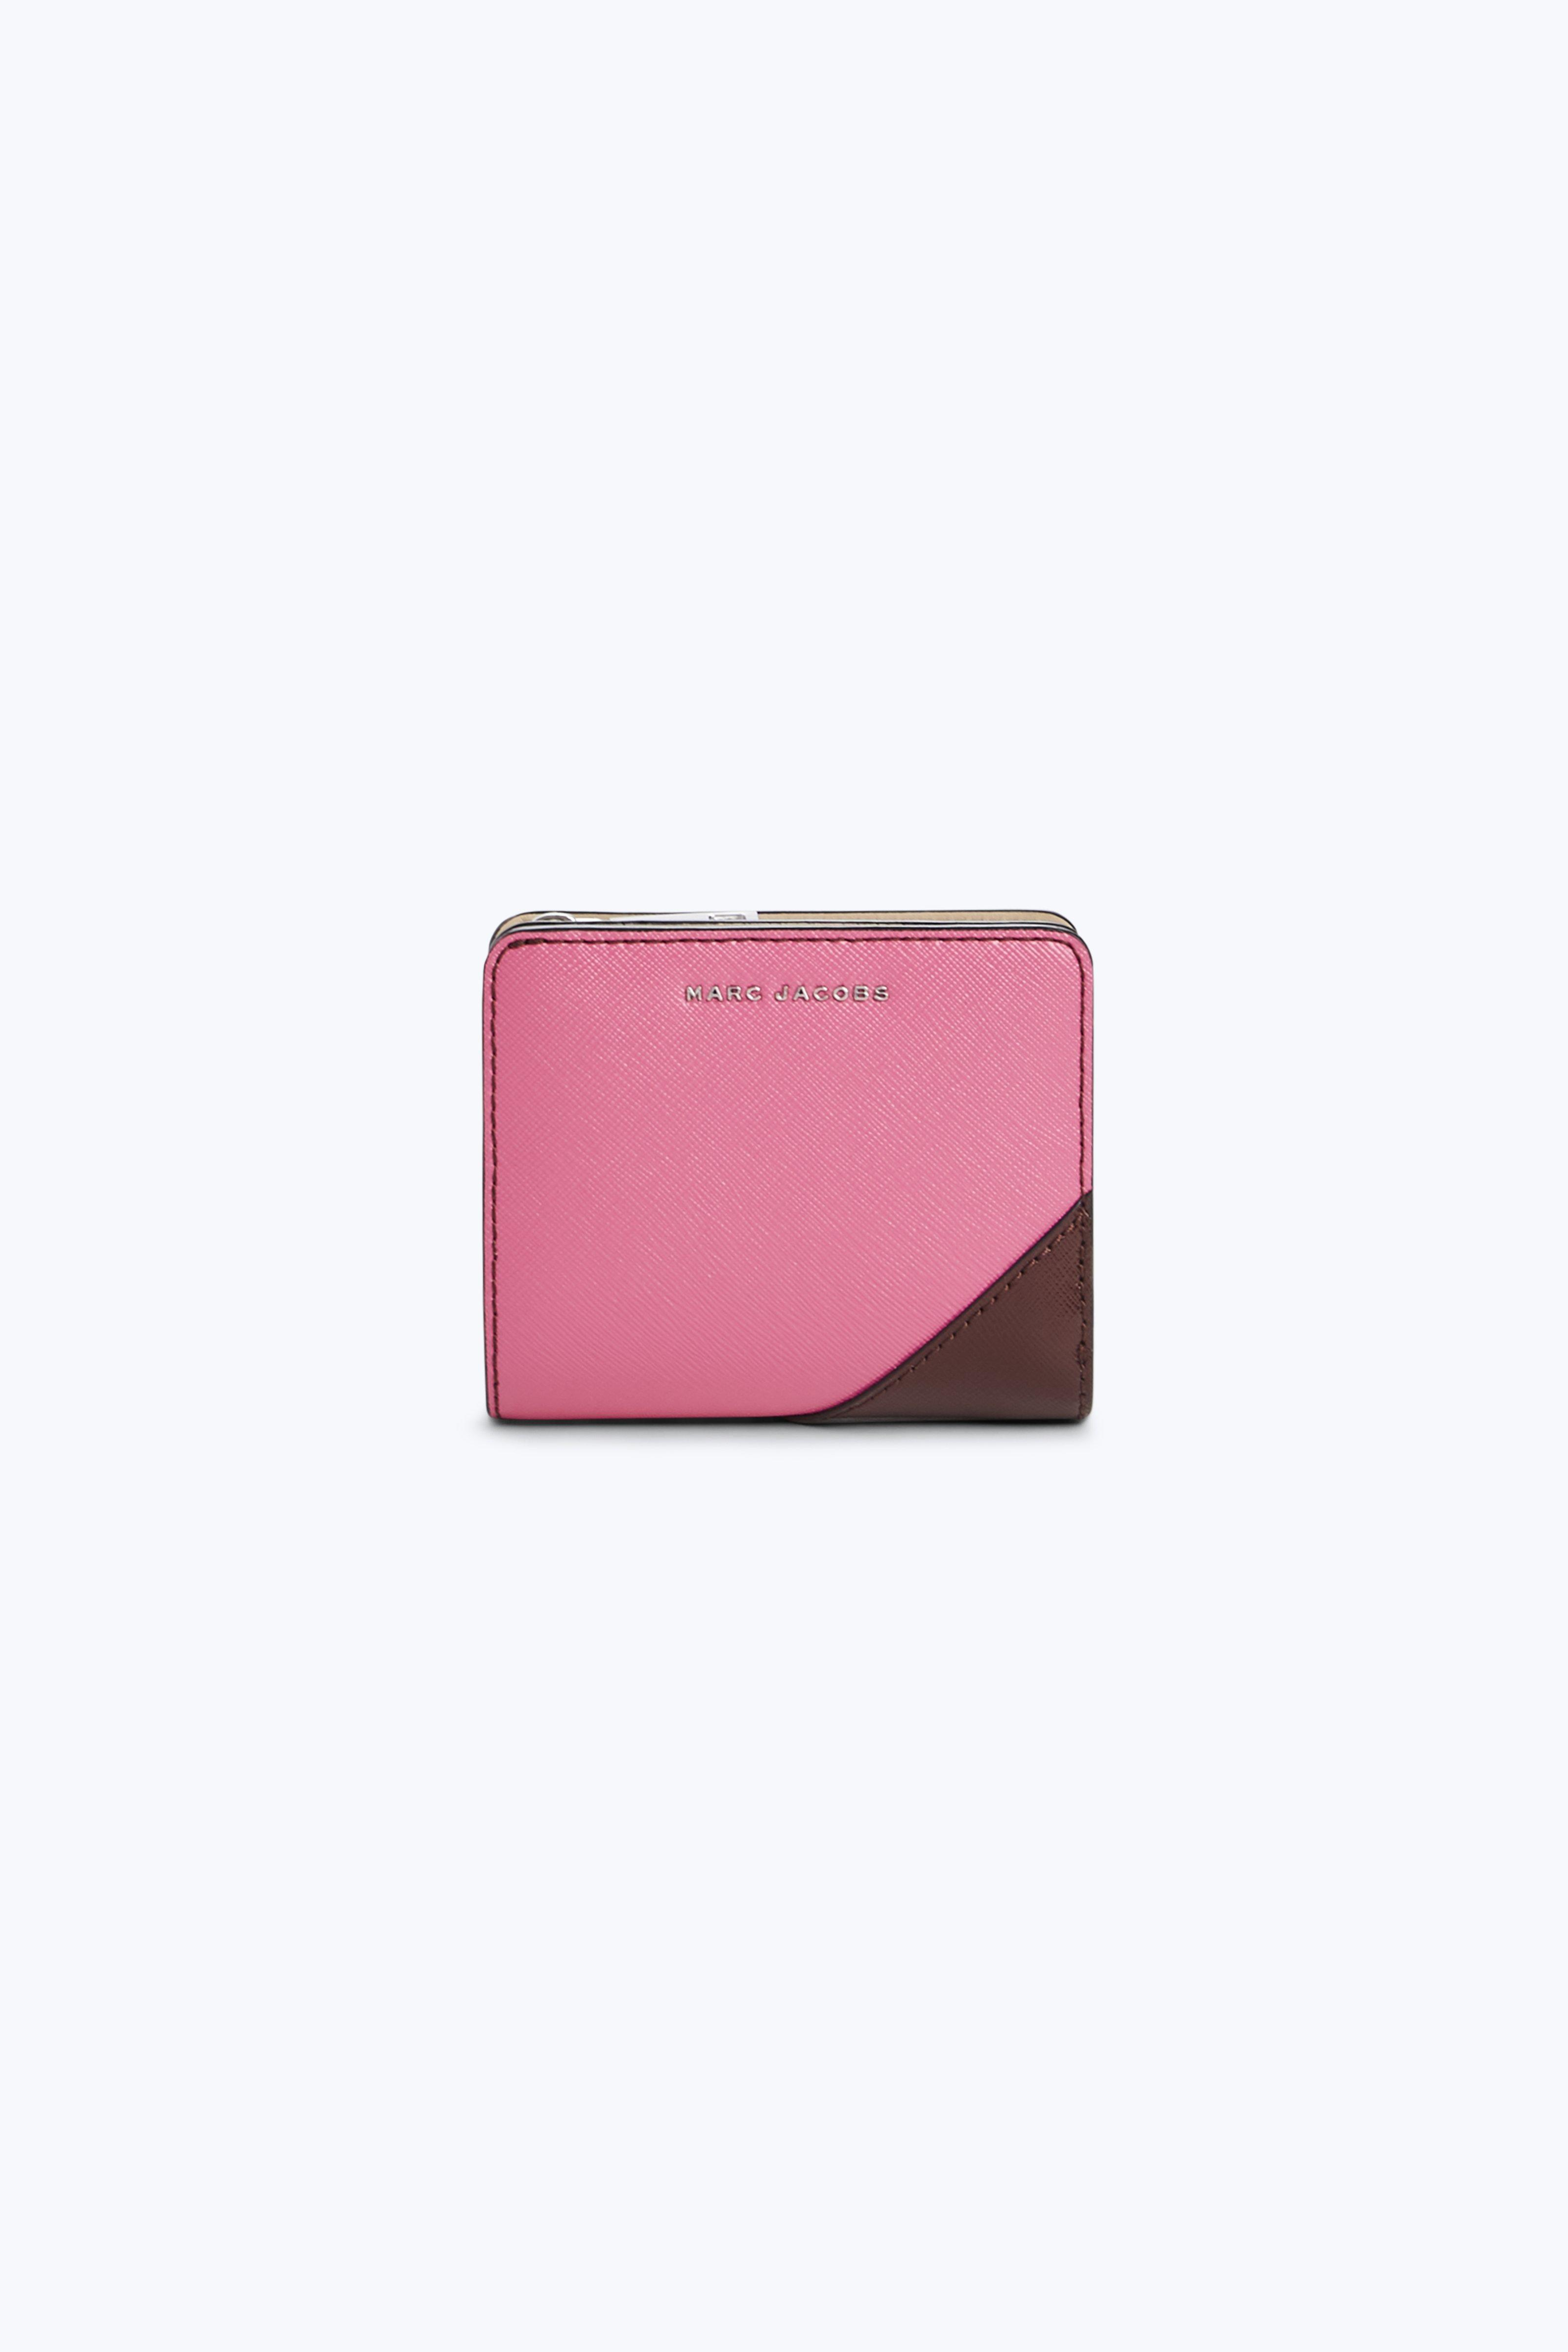 Marc Jacobs Saffiano Metal Letters Mini Compact Wallet In Tulip Pink Multi